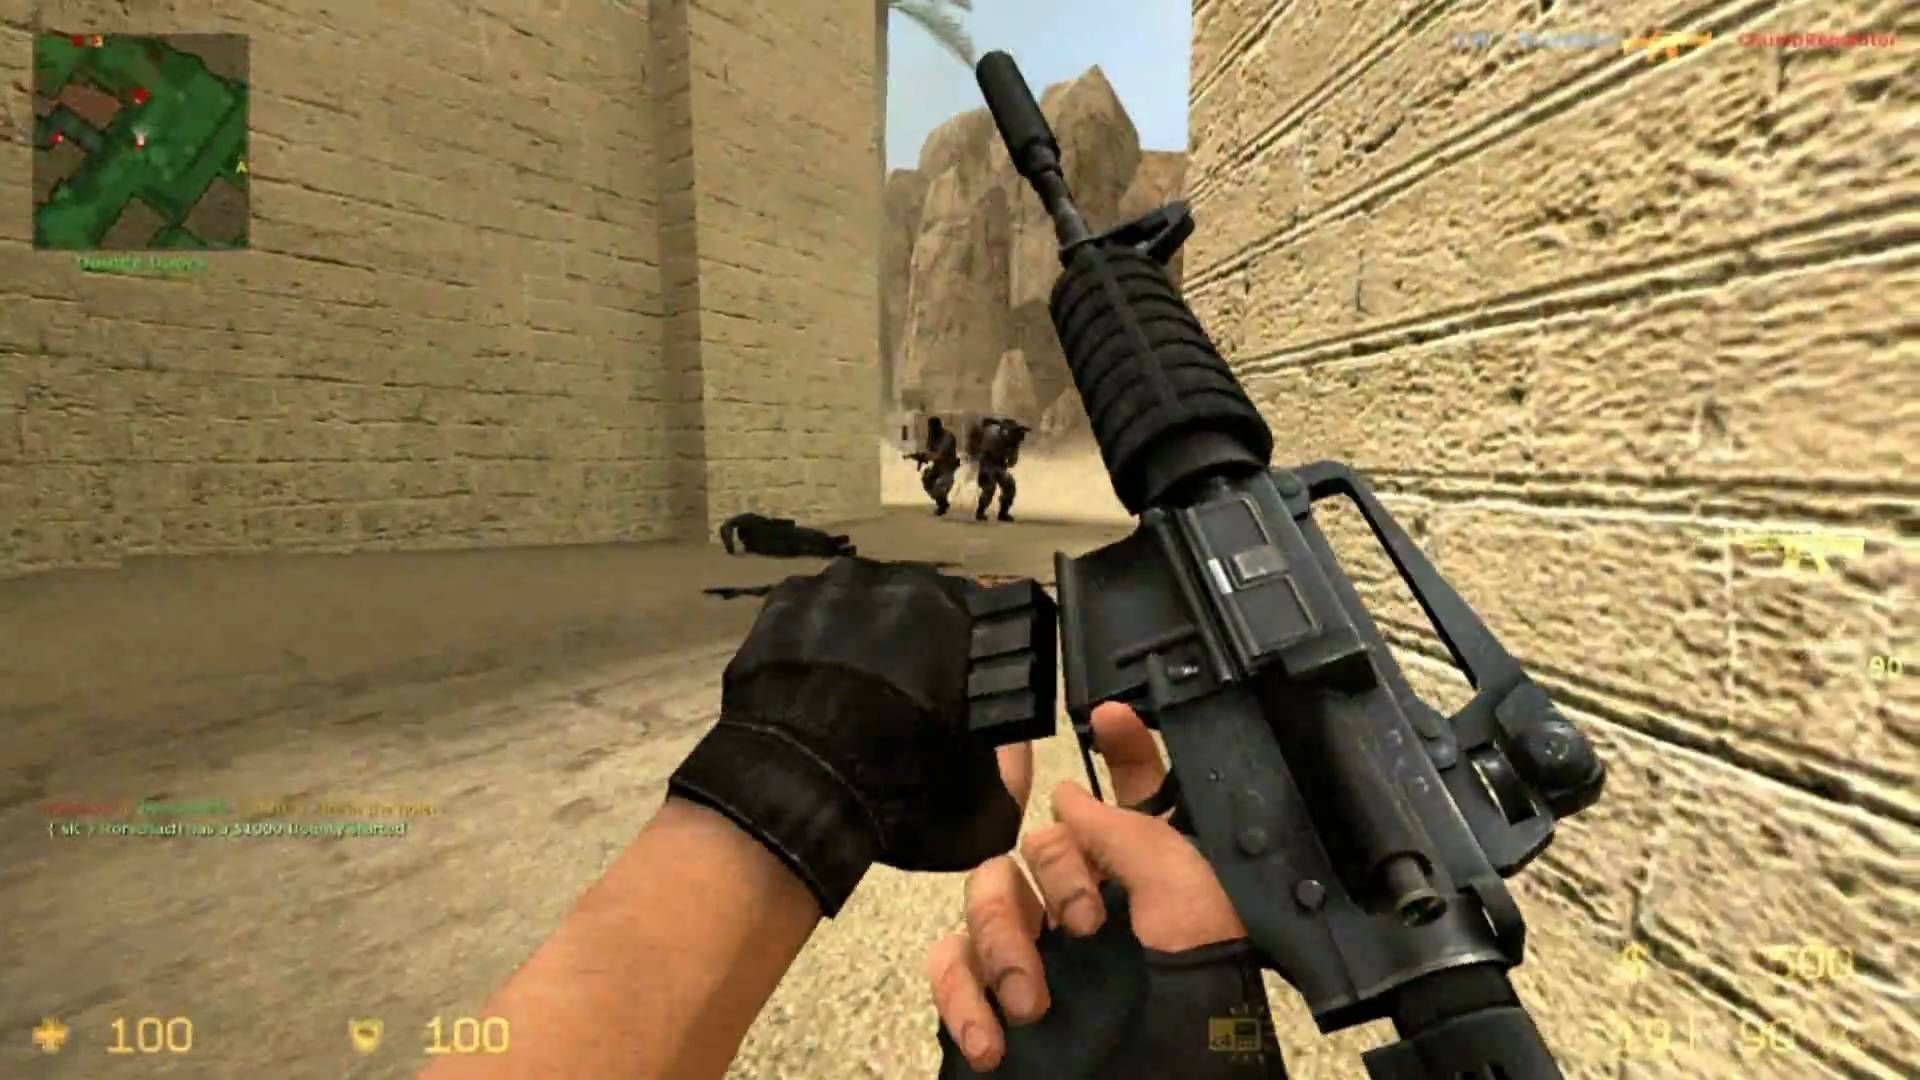 Counter Strike Source Gameplay Dust2 Map With Images Counter